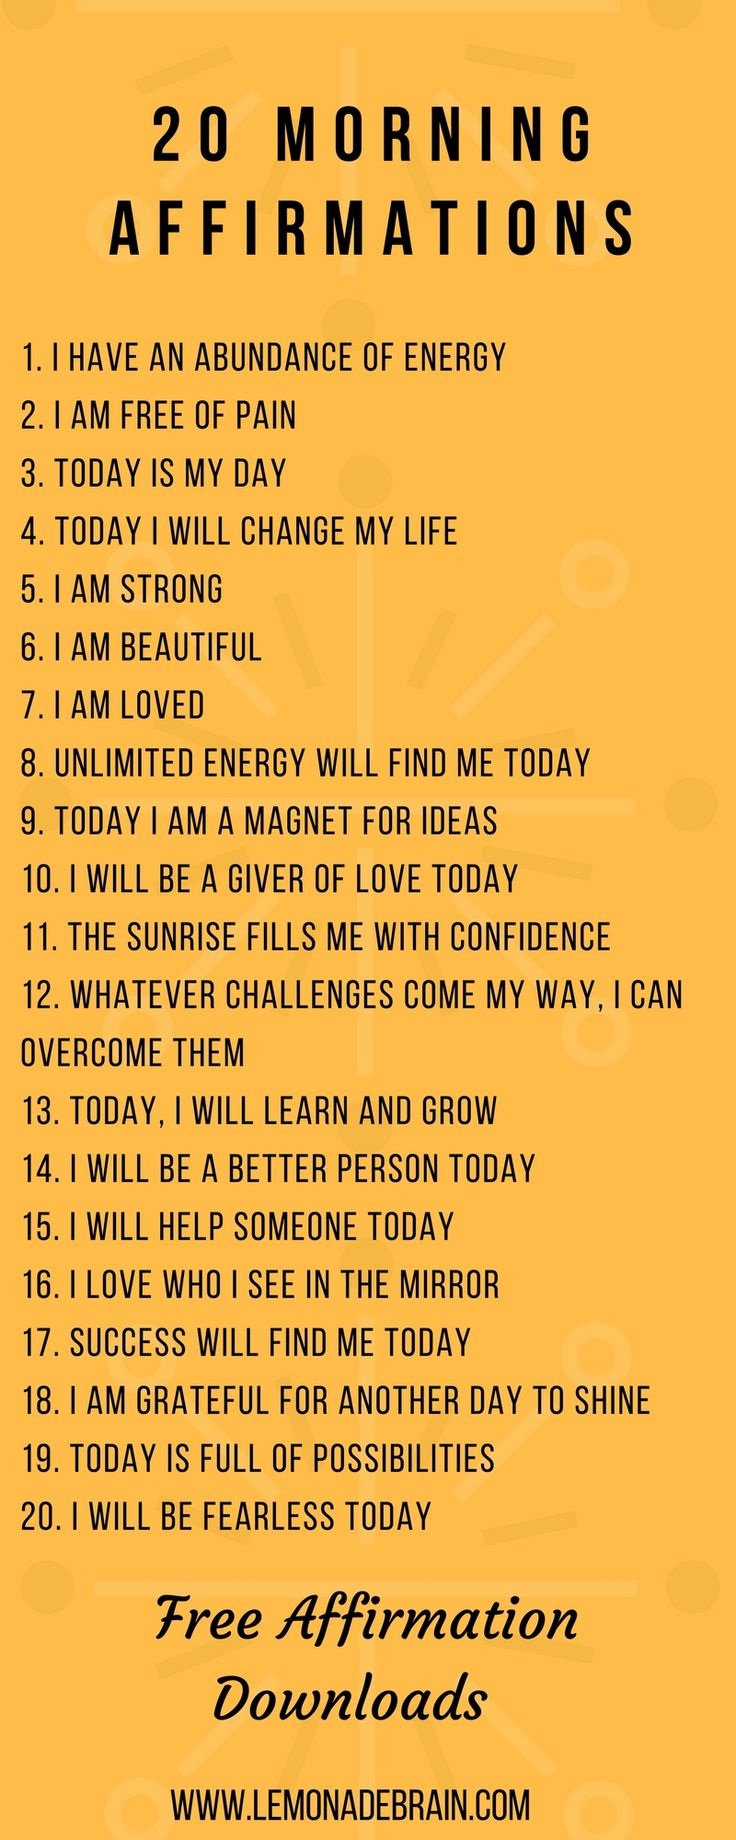 Positive affirmations. Lists of positive affirmations. Www.lemonadebrain.com #positiveadfirmations #lawofattraction #positivevibes #quotes #bestquotes